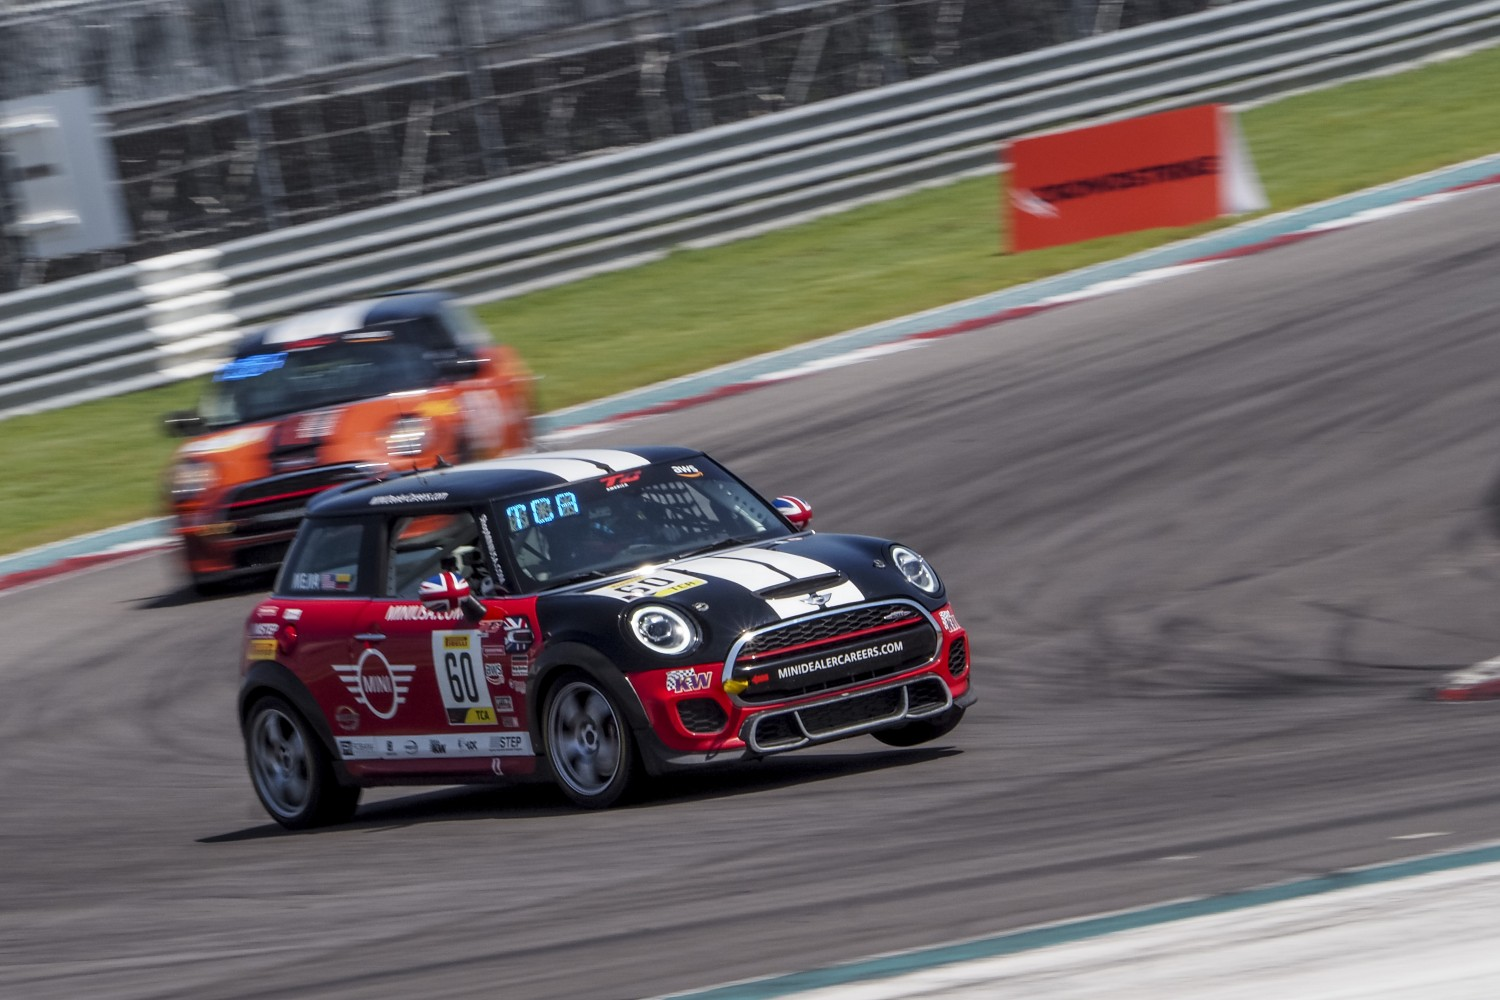 #60 MINI Cooper JCW of Tomas Mejia, MINI JCW Team, TCA, SRO America, Circuit of the Americas, Austin TX, September 2020.  | Brian Cleary/SRO